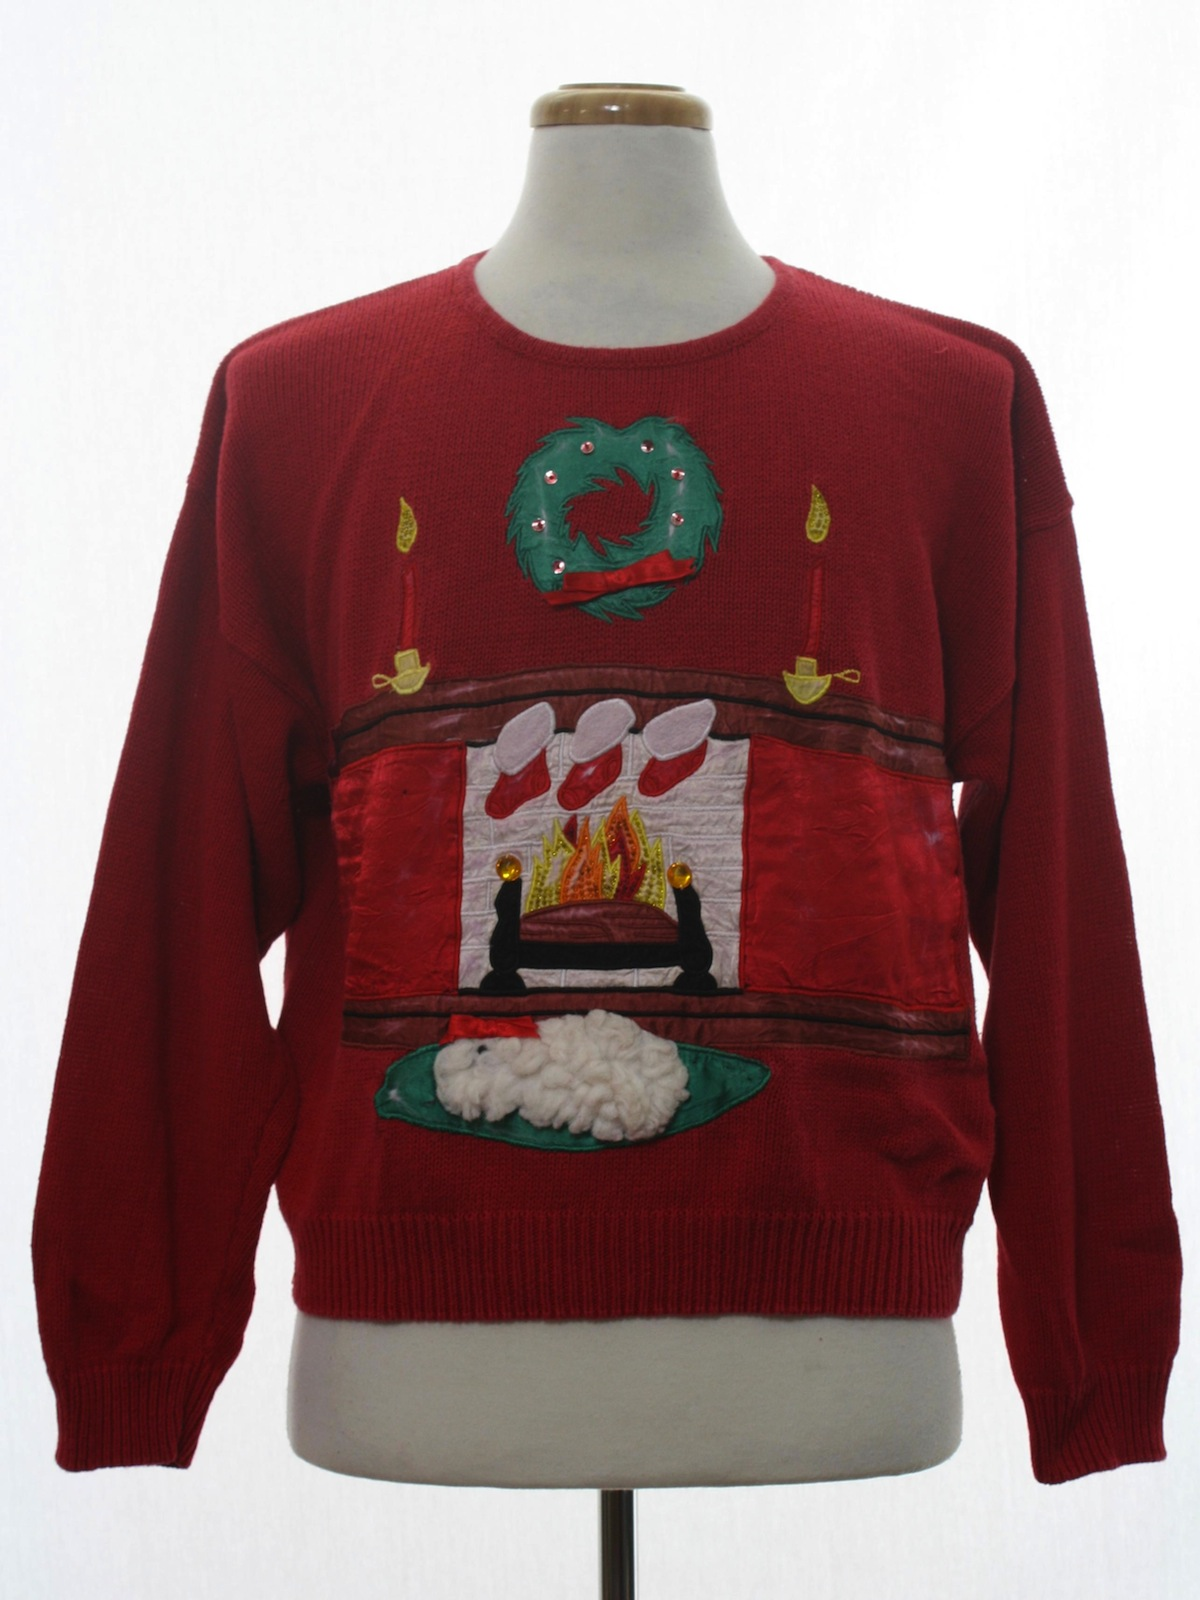 Ugly Christmas Sweater Work In Progress Unisex Red Background Cotton Pullover Longsleeve Ugly